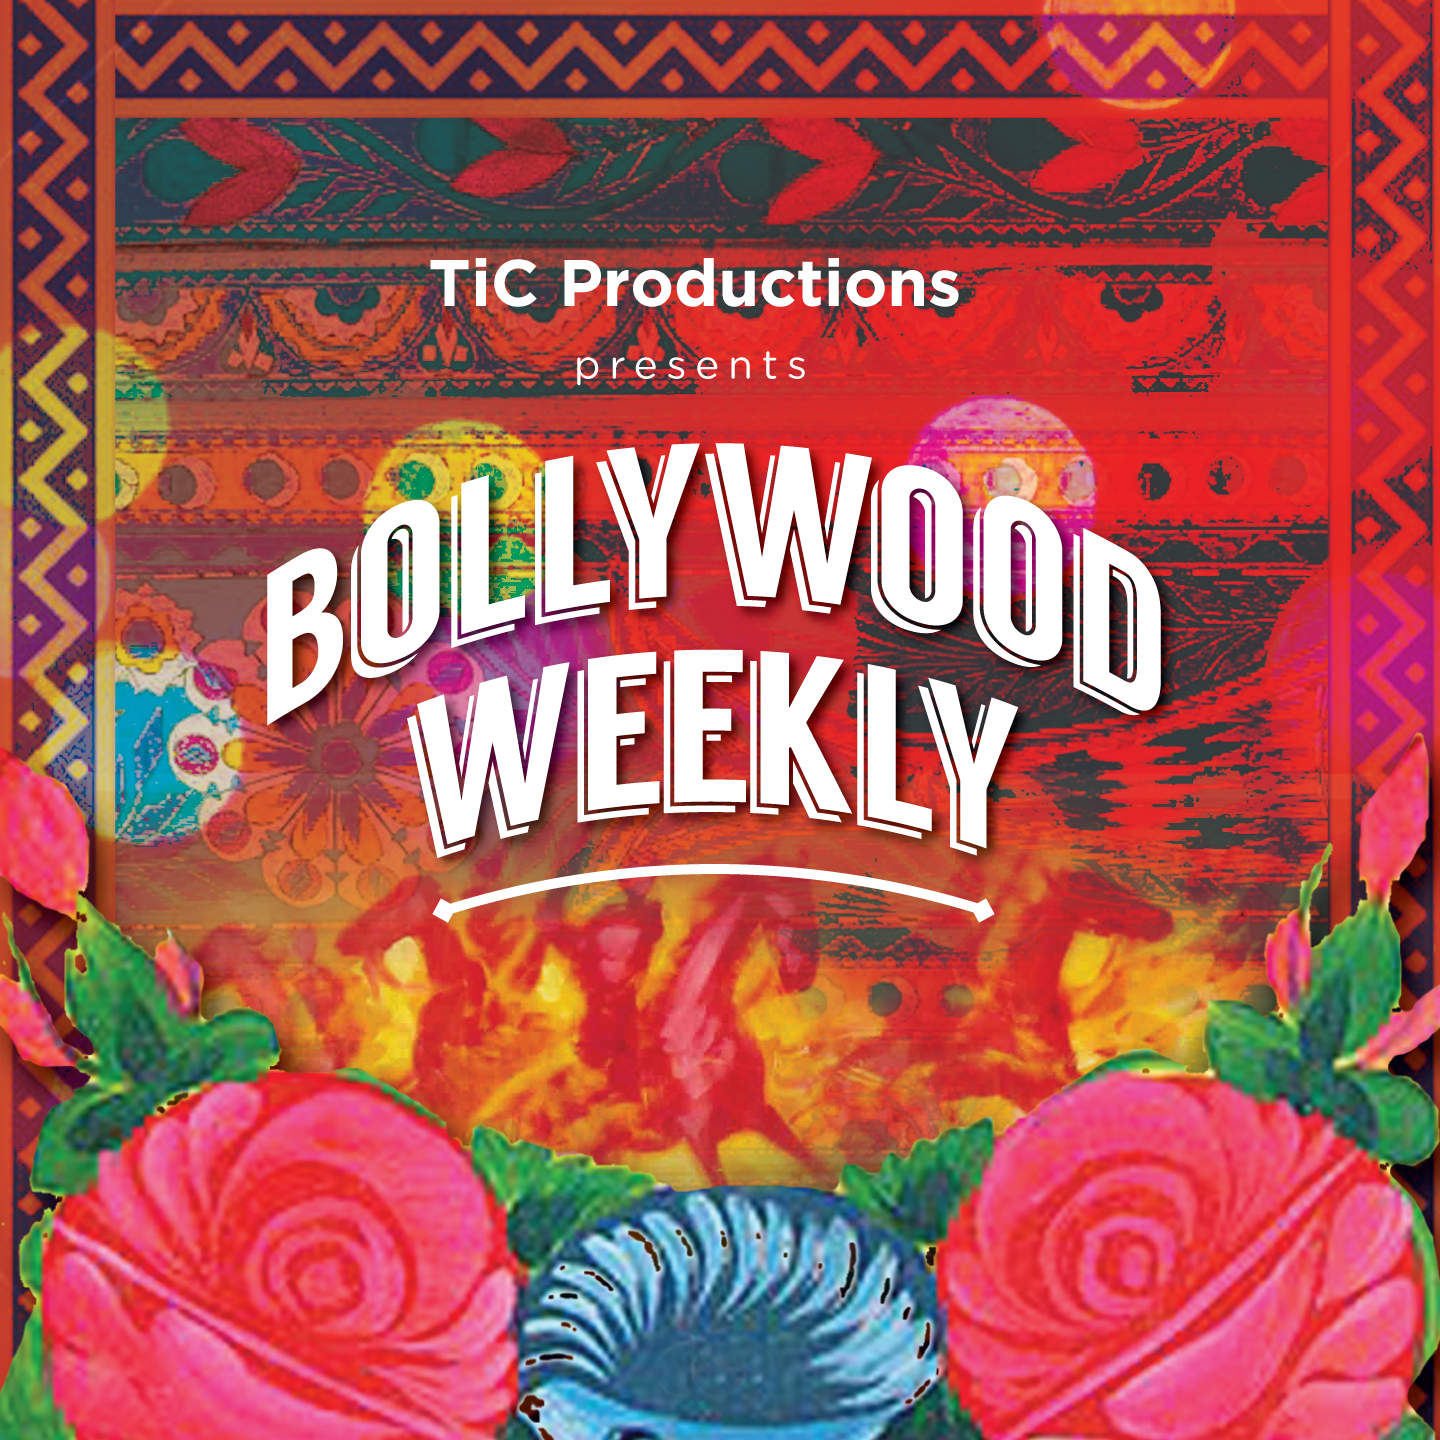 Bollywood Weekly